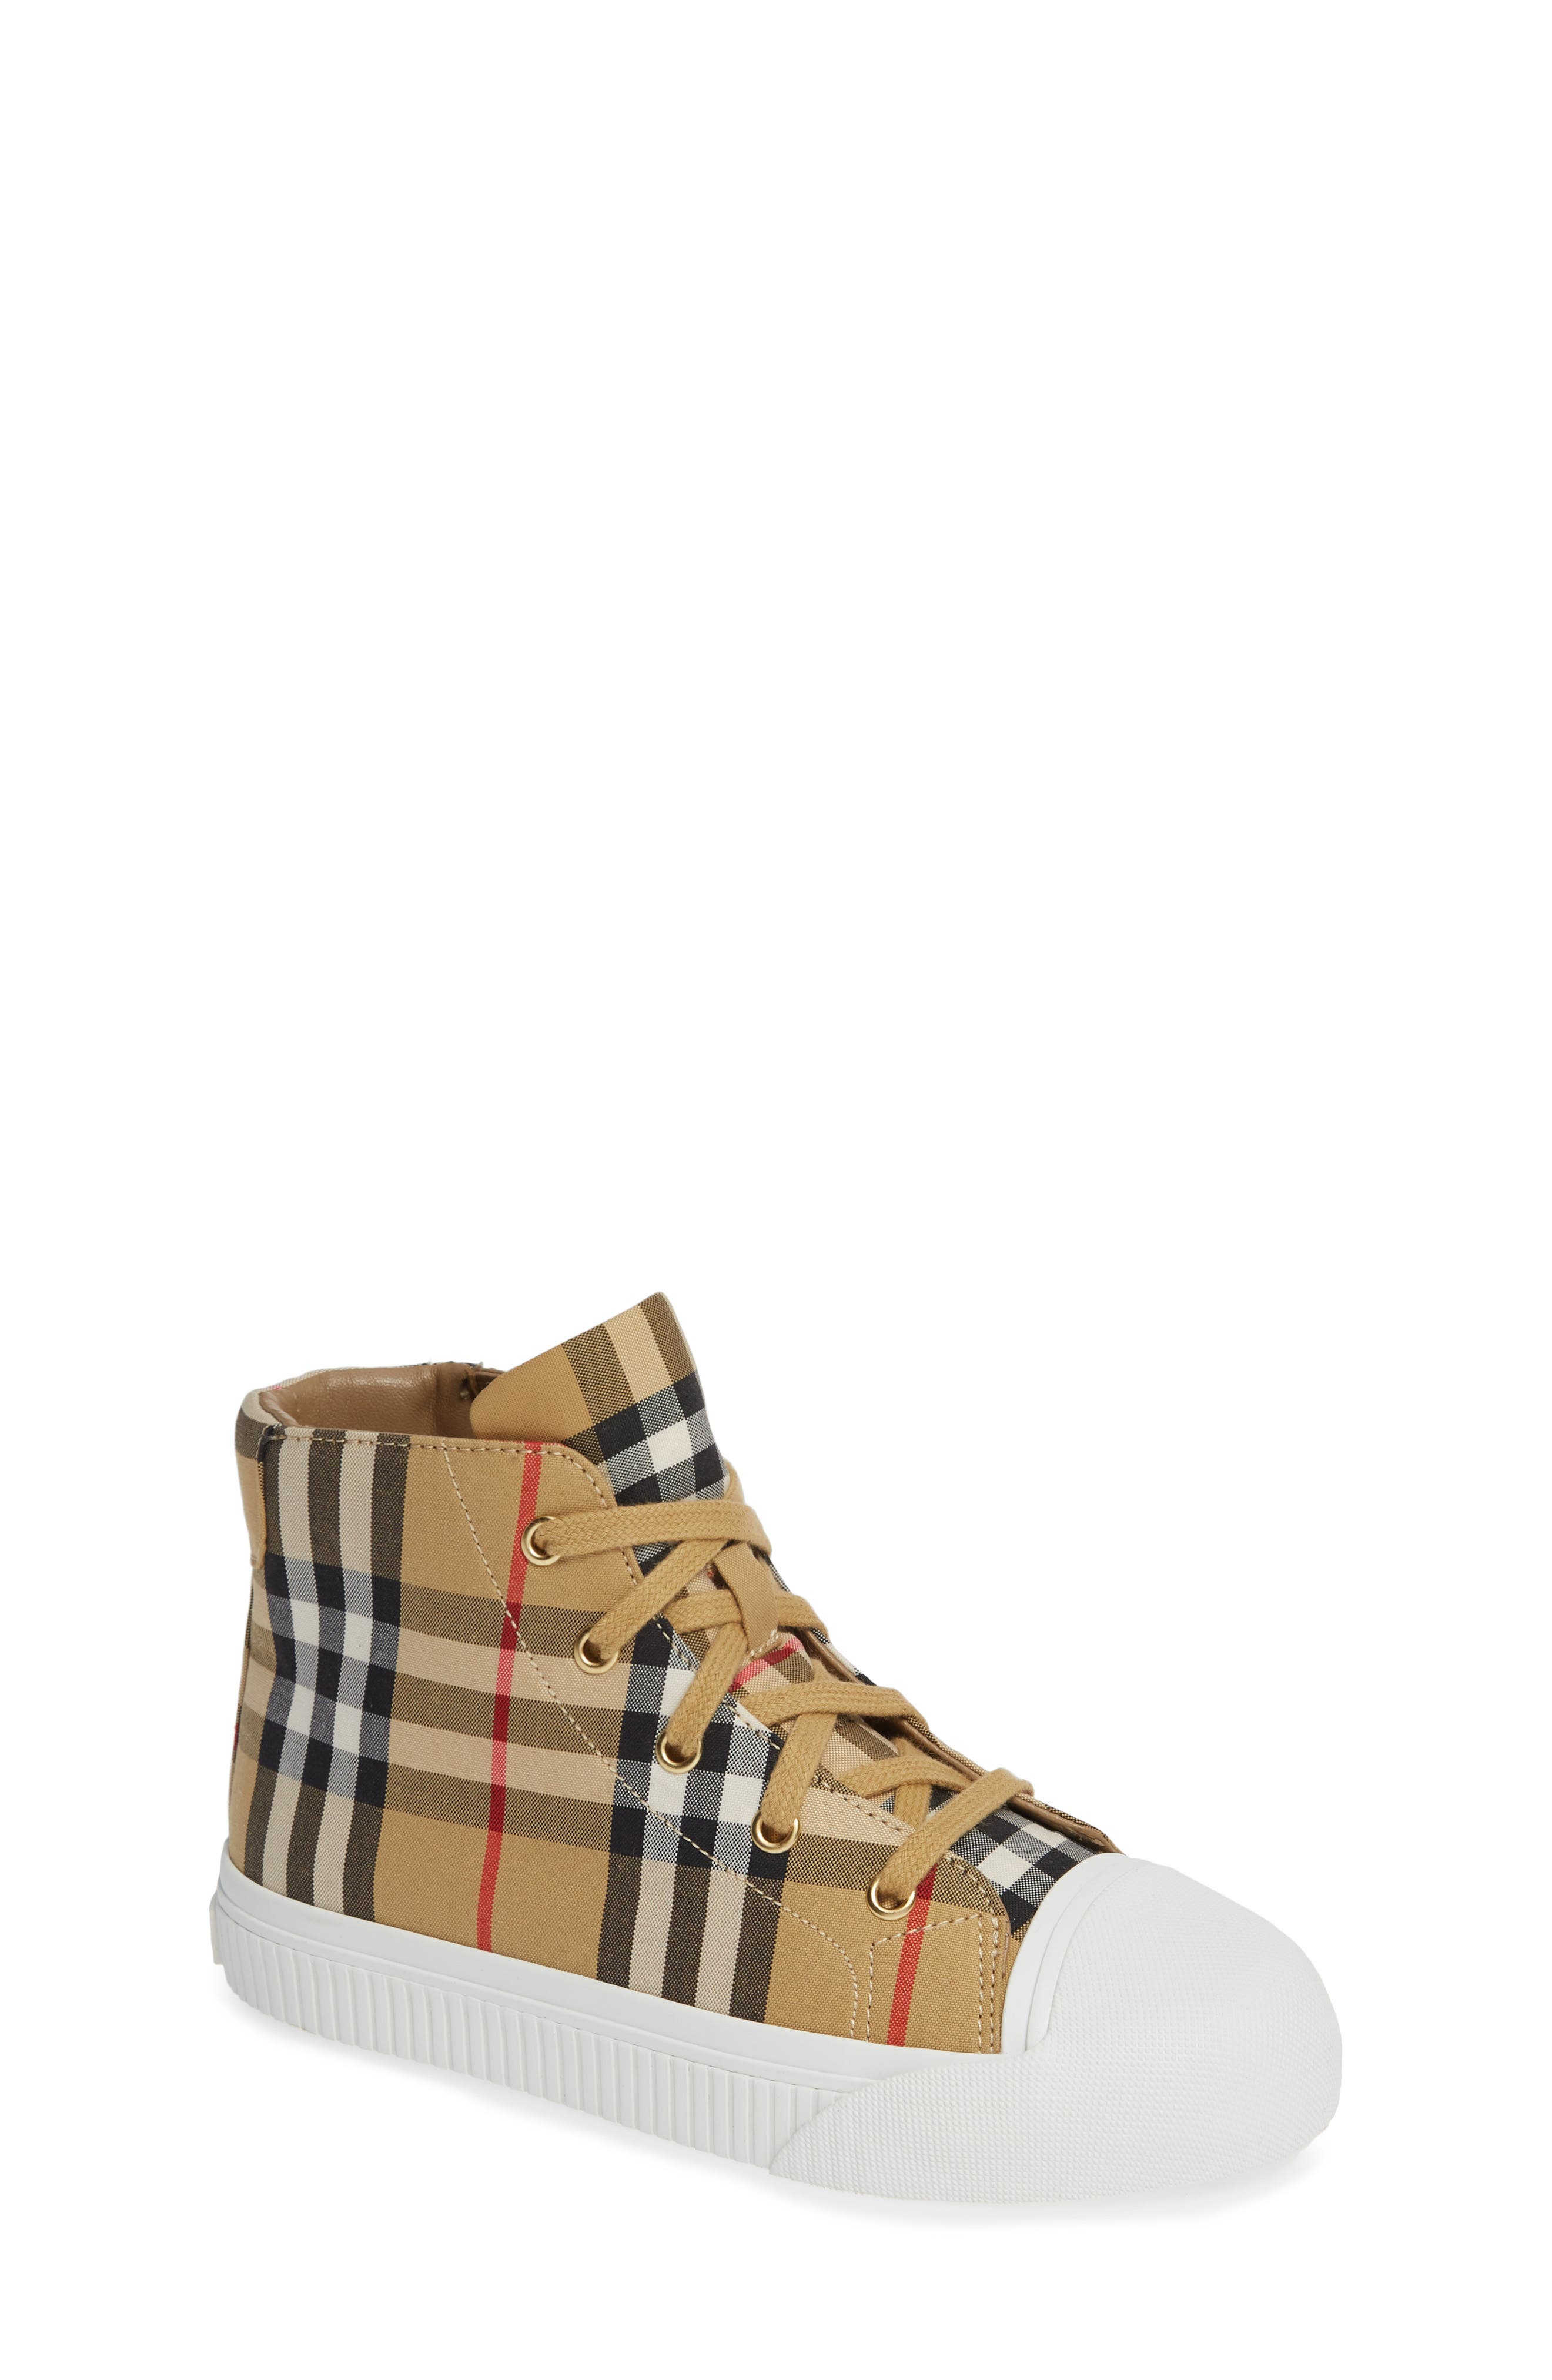 BURBERRY Belford High-Top Sneaker, Main, color, ANTIQUE YELLOW/ OPTIC WHITE